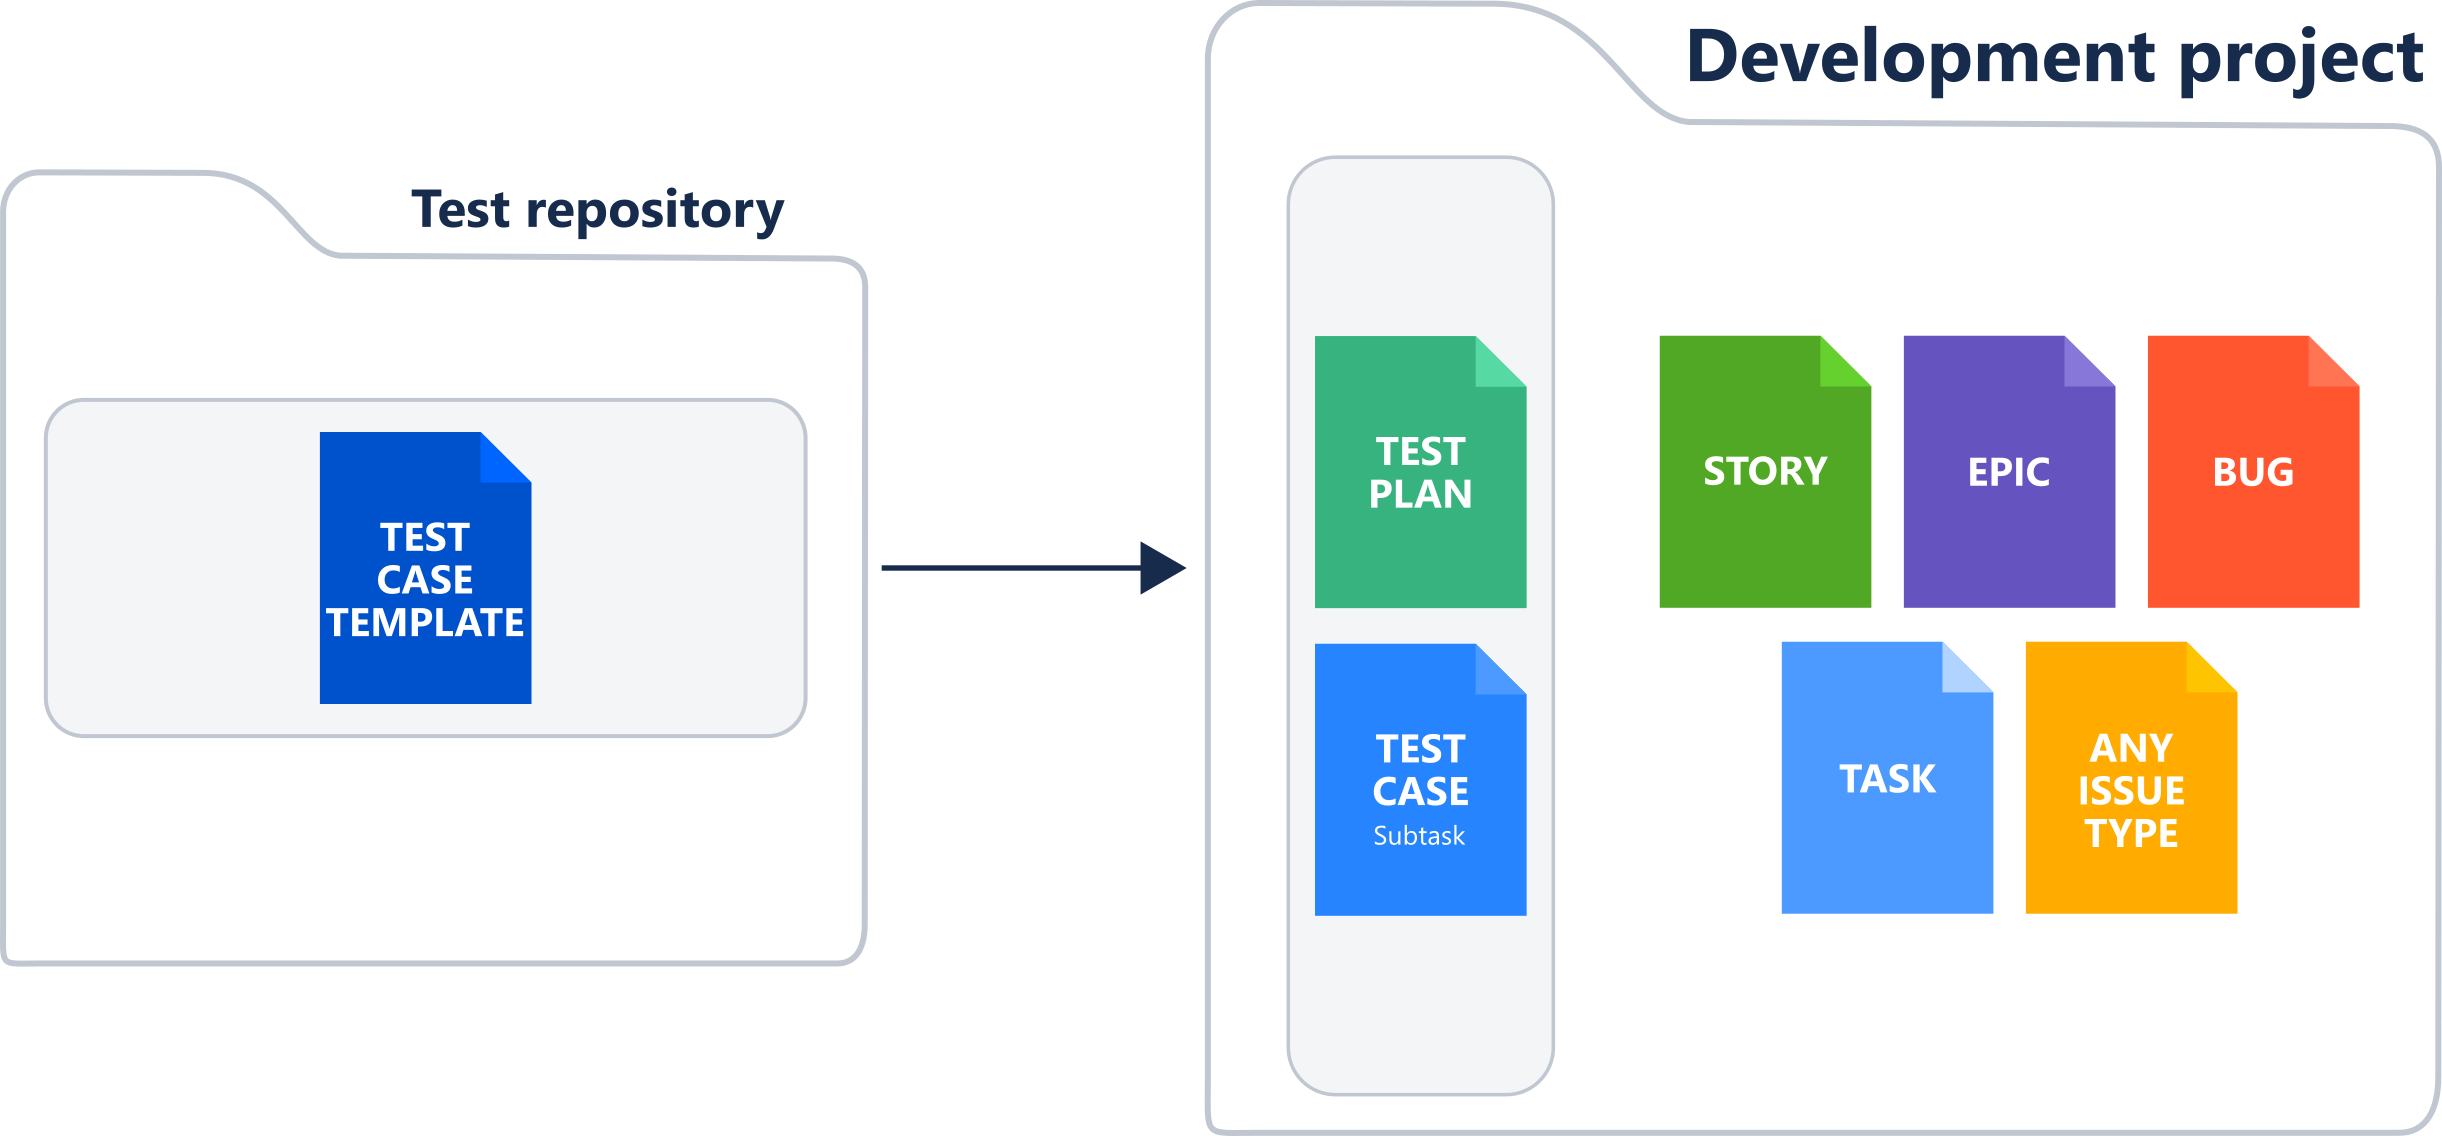 Separate test repository